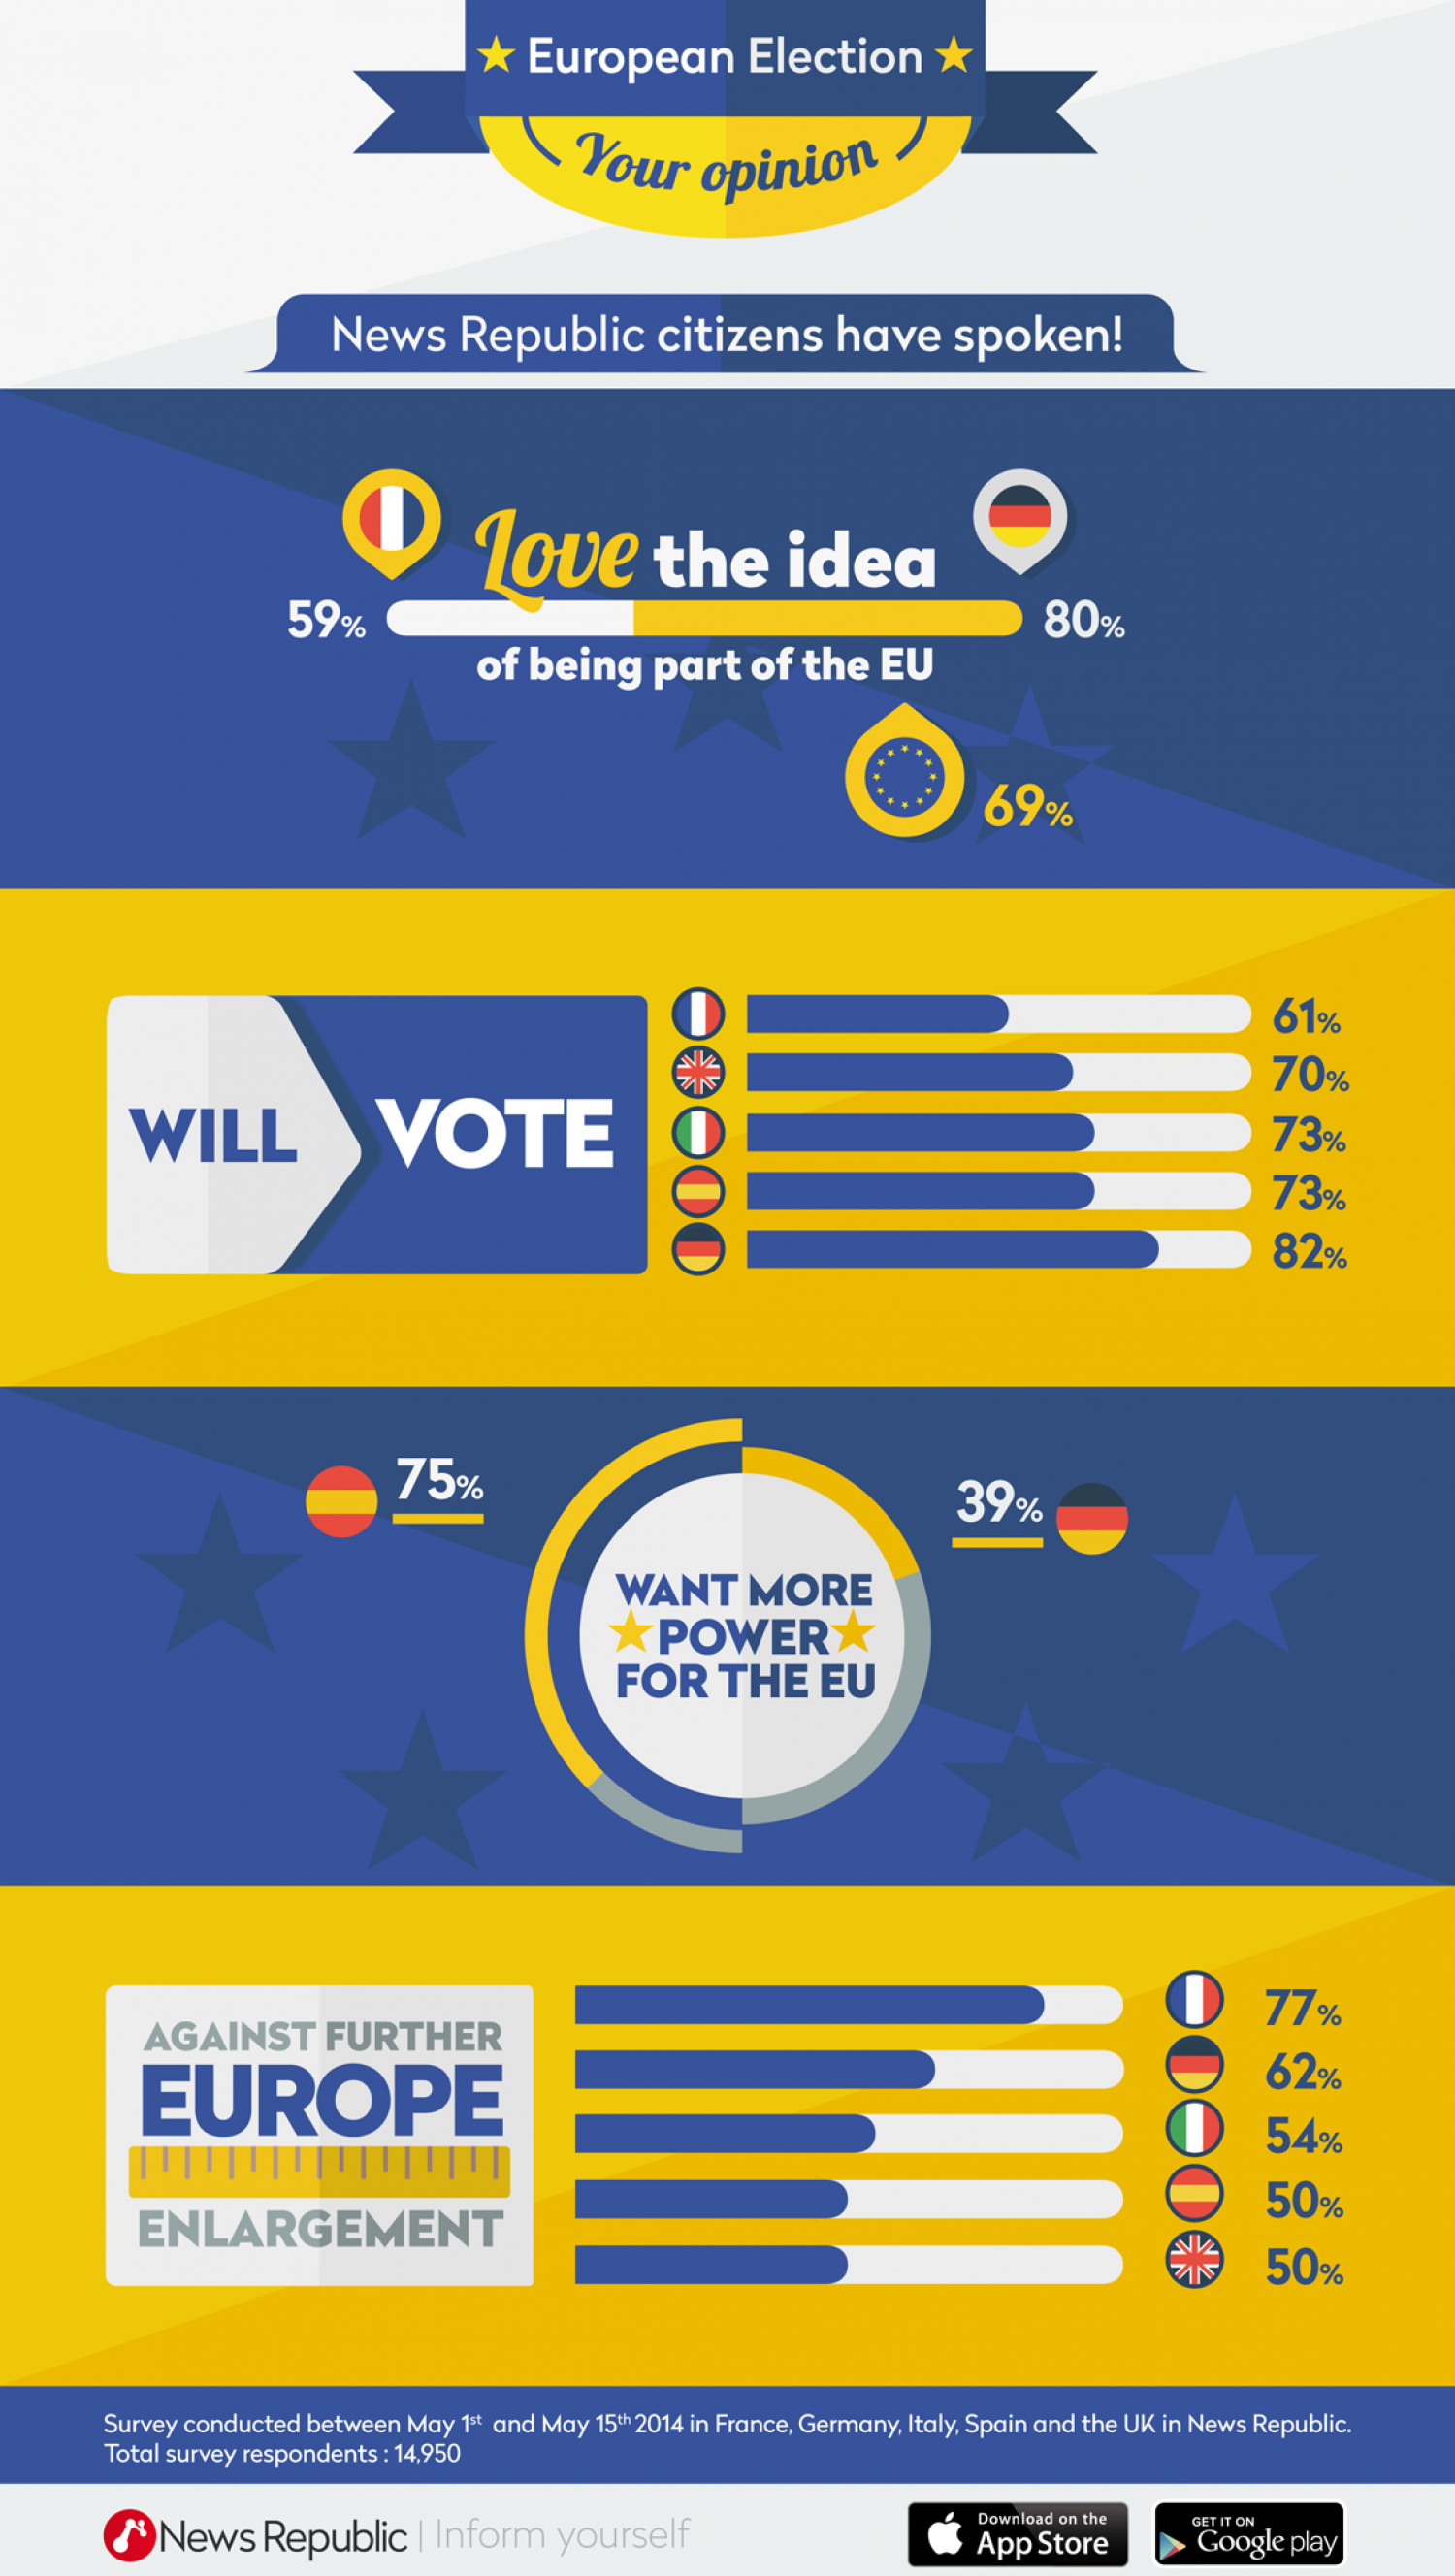 European ElectionYour Opinion - News Republic Citizens Have Spoken! Infographic